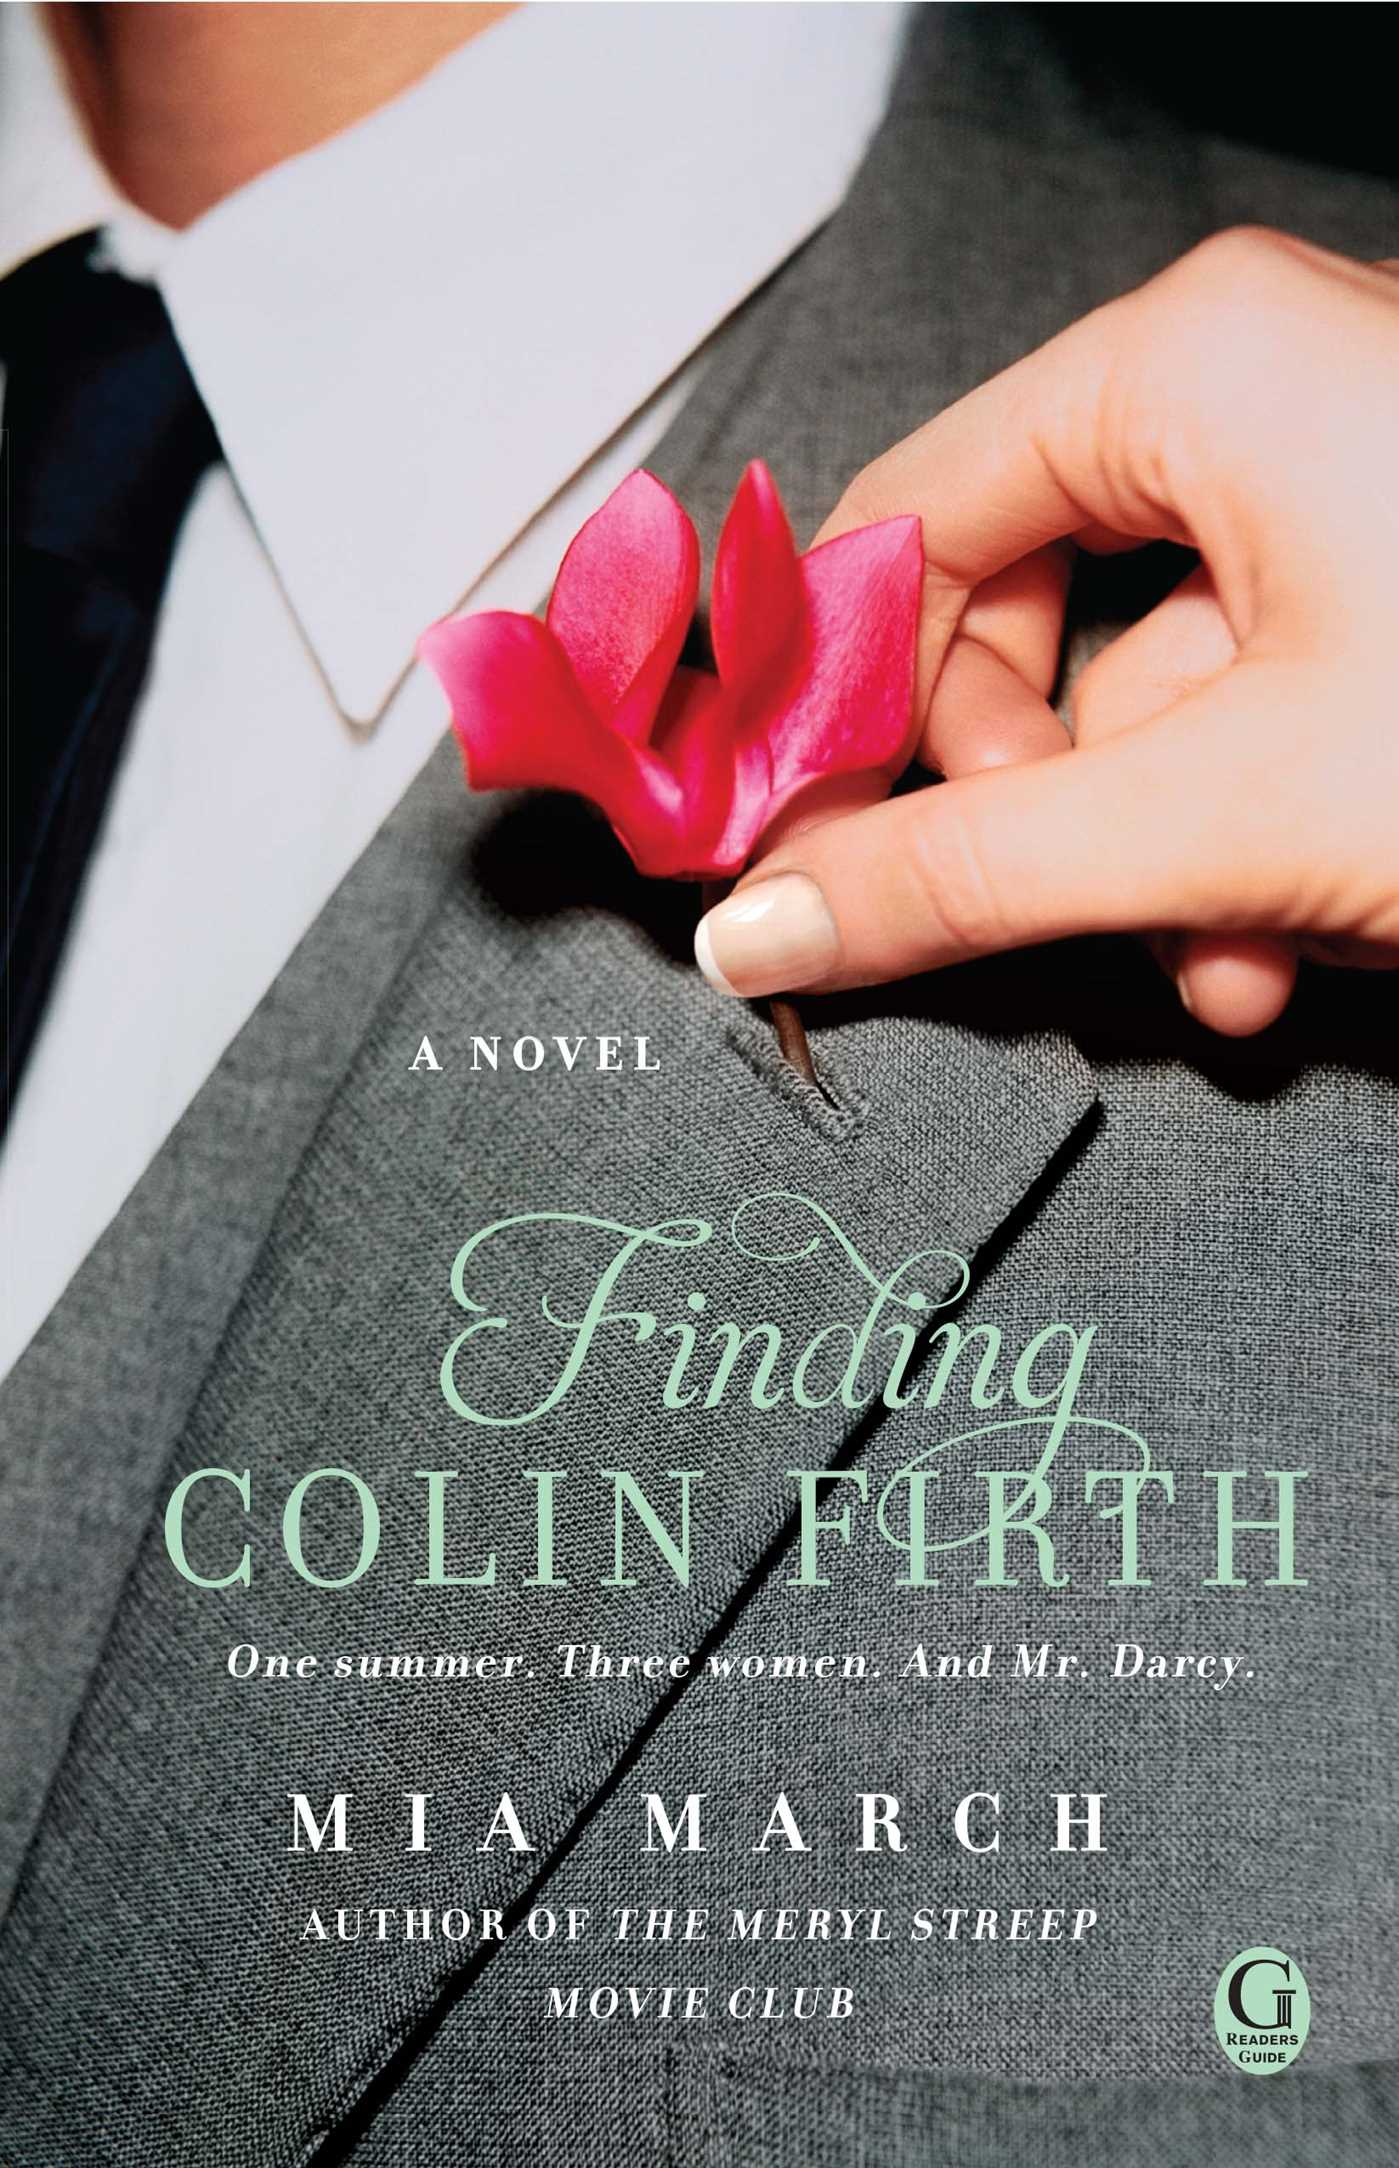 Finding-colin-firth-9781476710204_hr